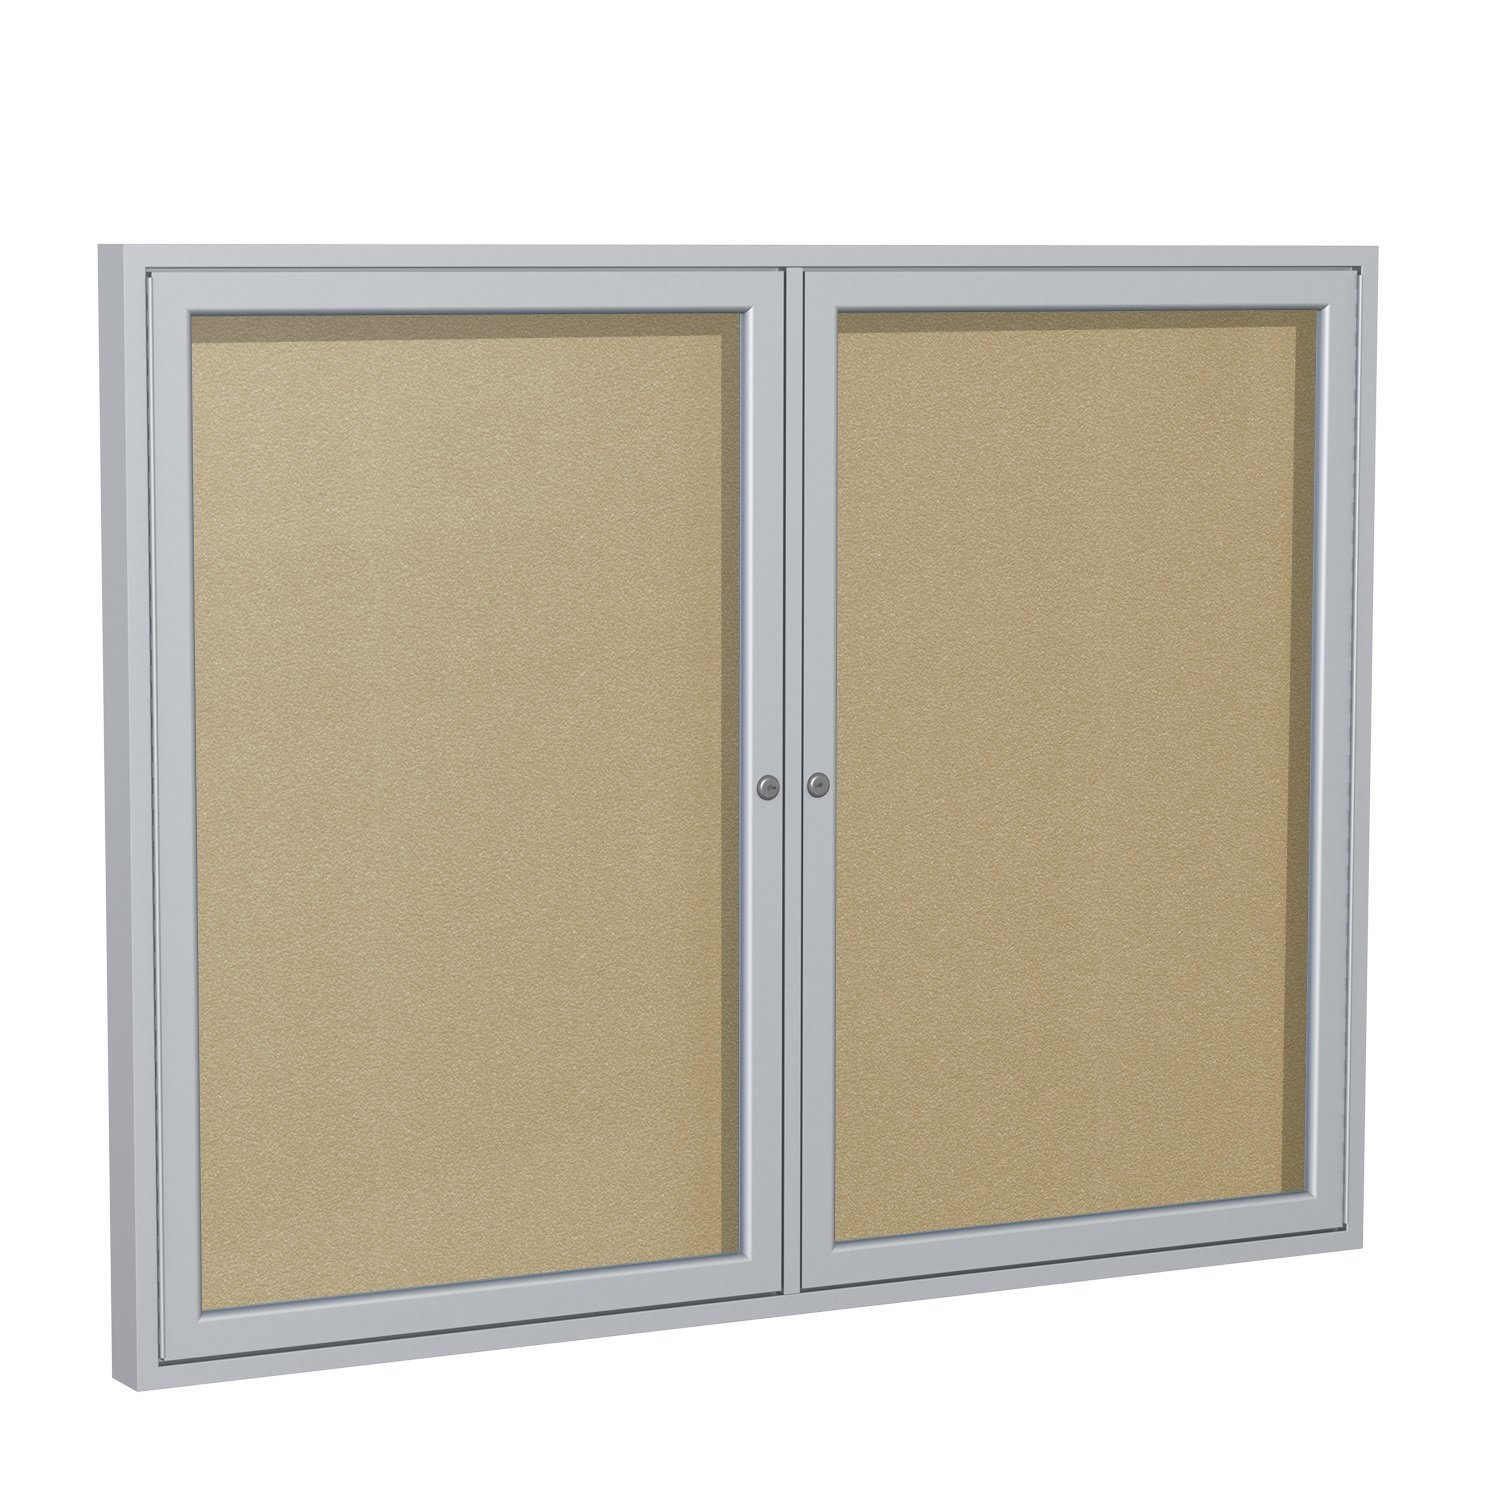 Ghent 36''x48''  2-Door Outdoor Enclosed Vinyl Bulletin Board, Shatter Resistant, with Lock, Satin Aluminum Frame - Caramel (PA23648VX-181), Made in the USA